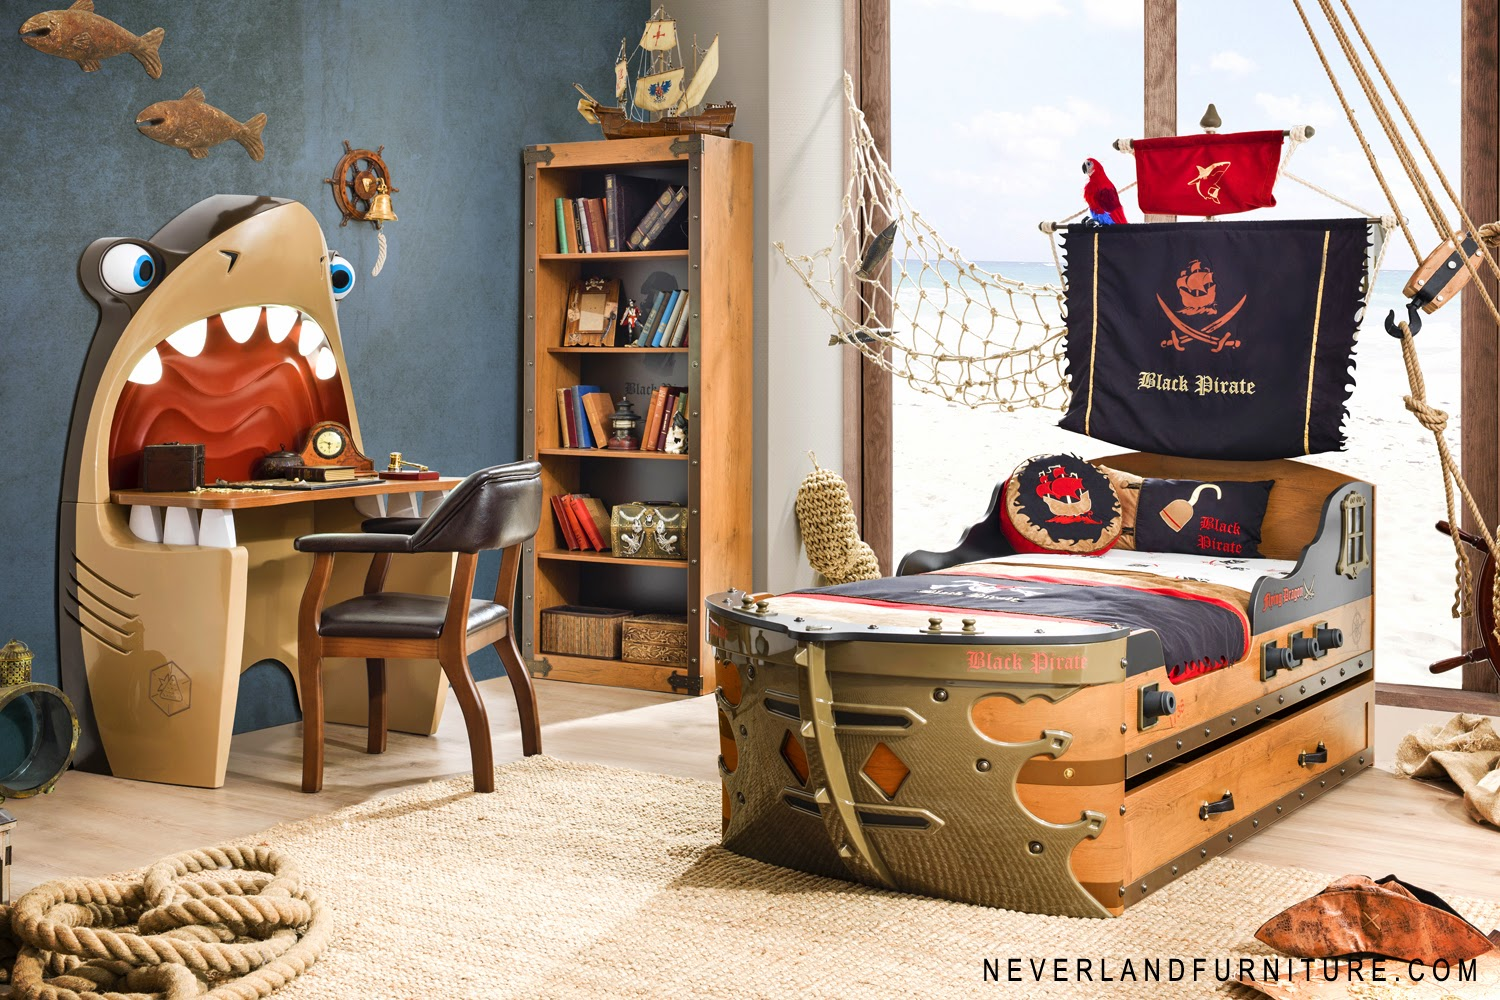 Office chair on sale in canada black pirate gunboat bed for Boys bedroom furniture